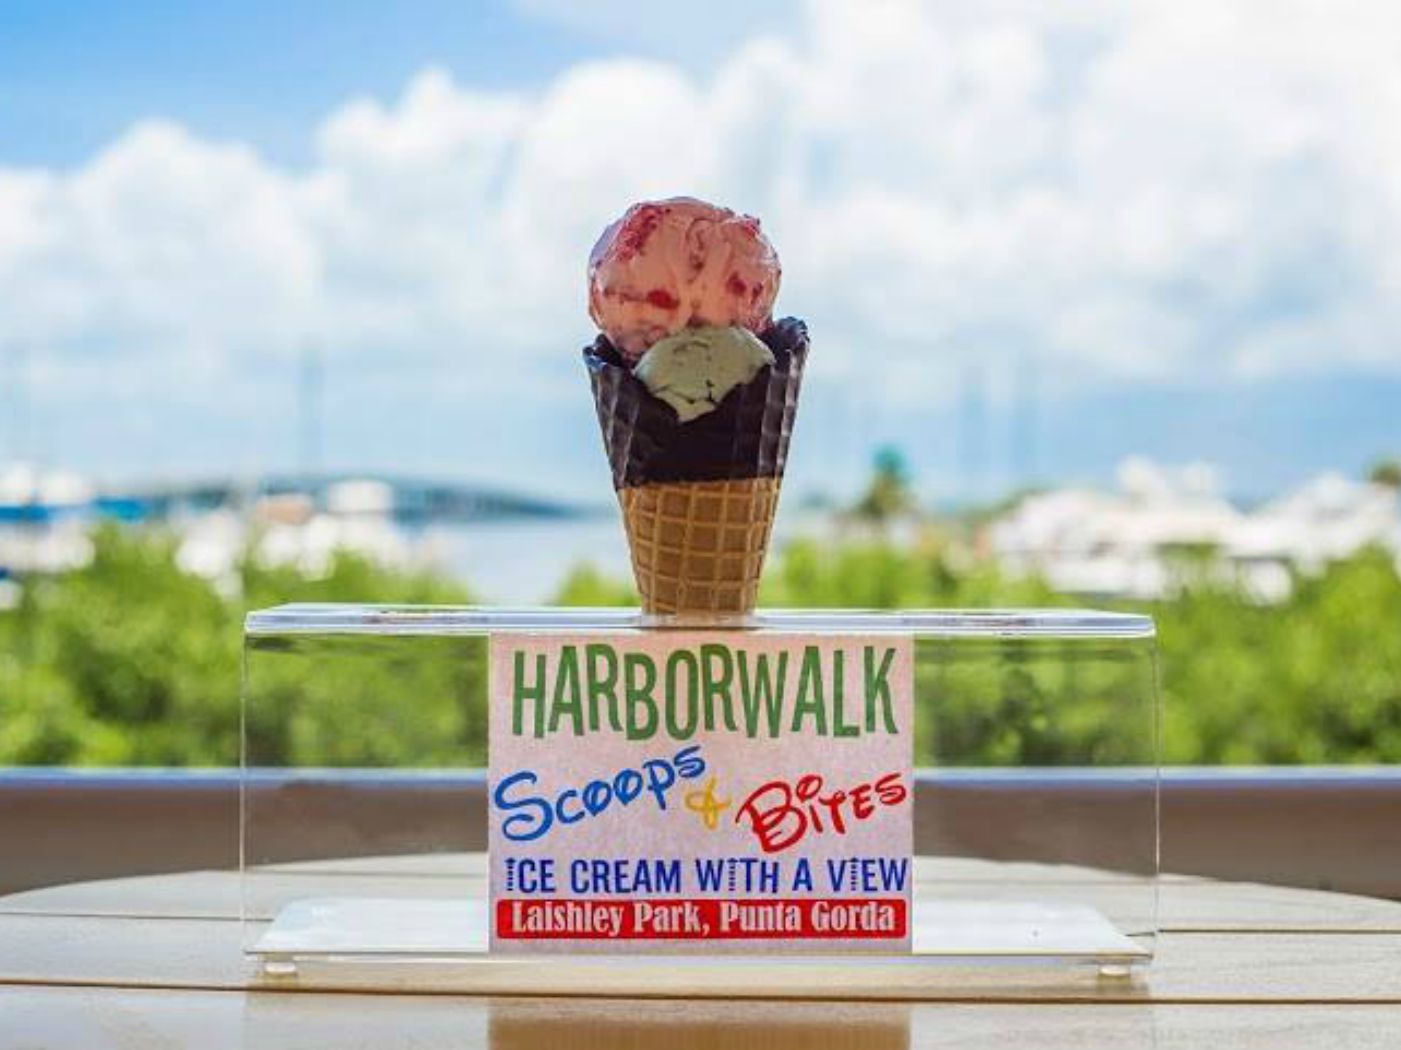 Harborwalk Scoops & Bites